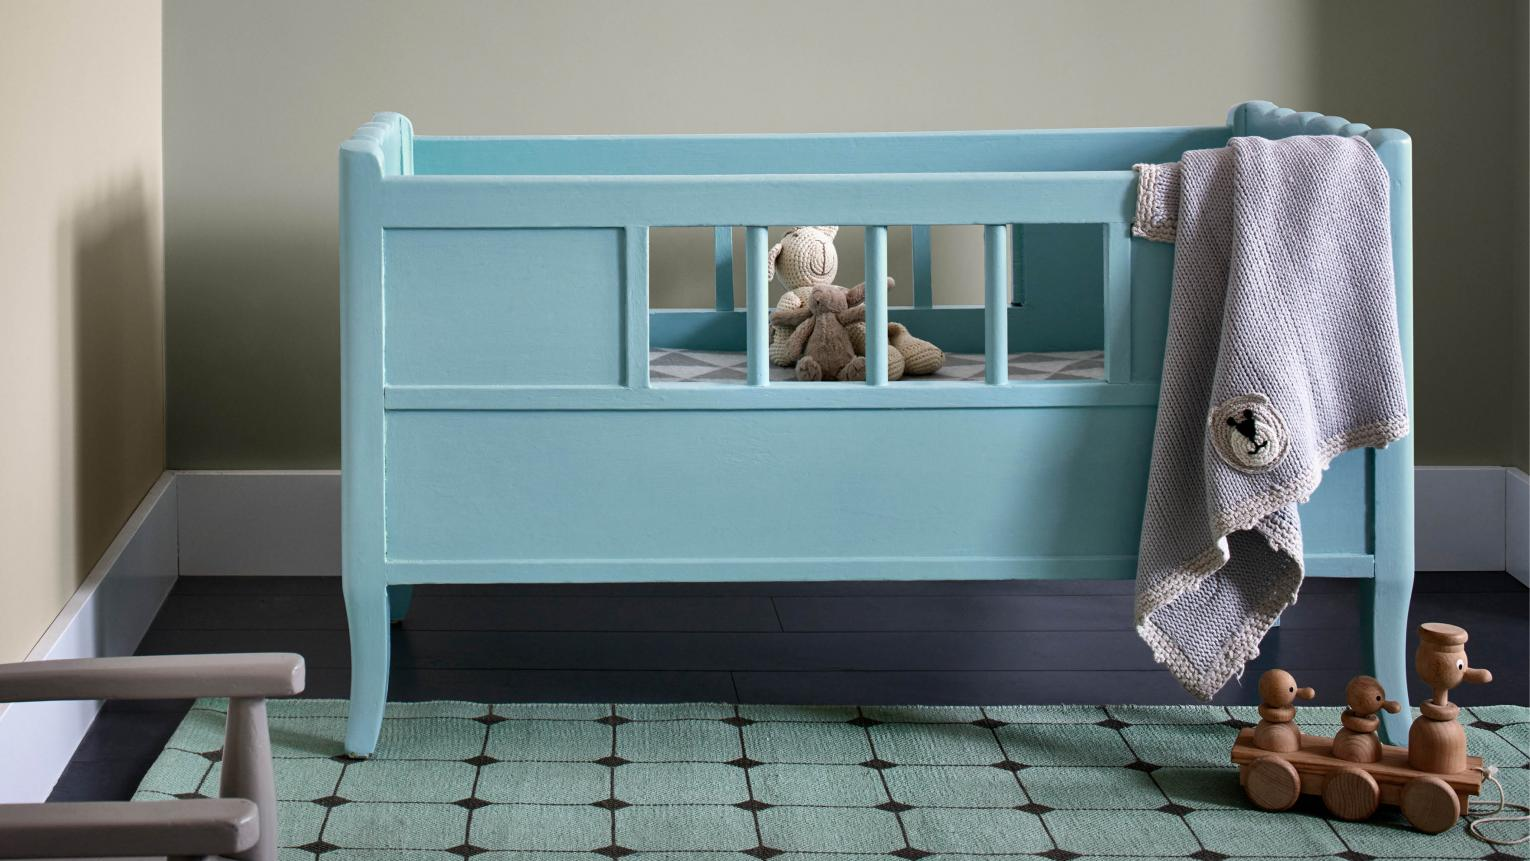 Kids grow up fast. One minute you're painting their nursery in baby blue, the next they're an inquisitive toddler with decorating ideas all of their own.